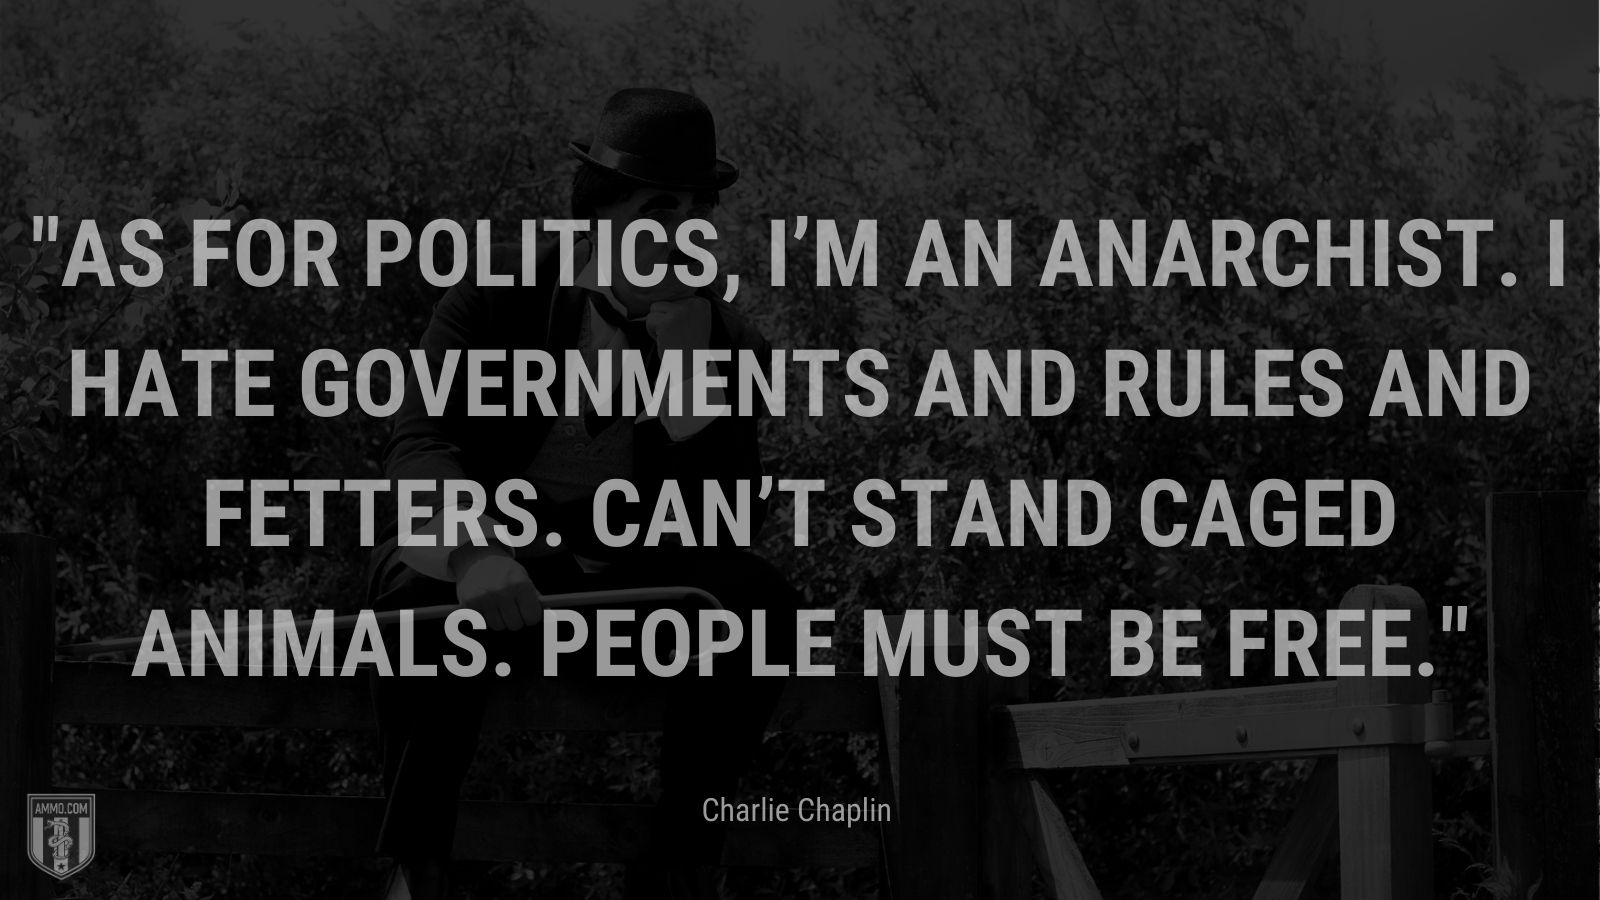 """""""As for politics, I'm an anarchist. I hate governments and rules and fetters. Can't stand caged animals. People must be free. - Charlie Chaplin"""